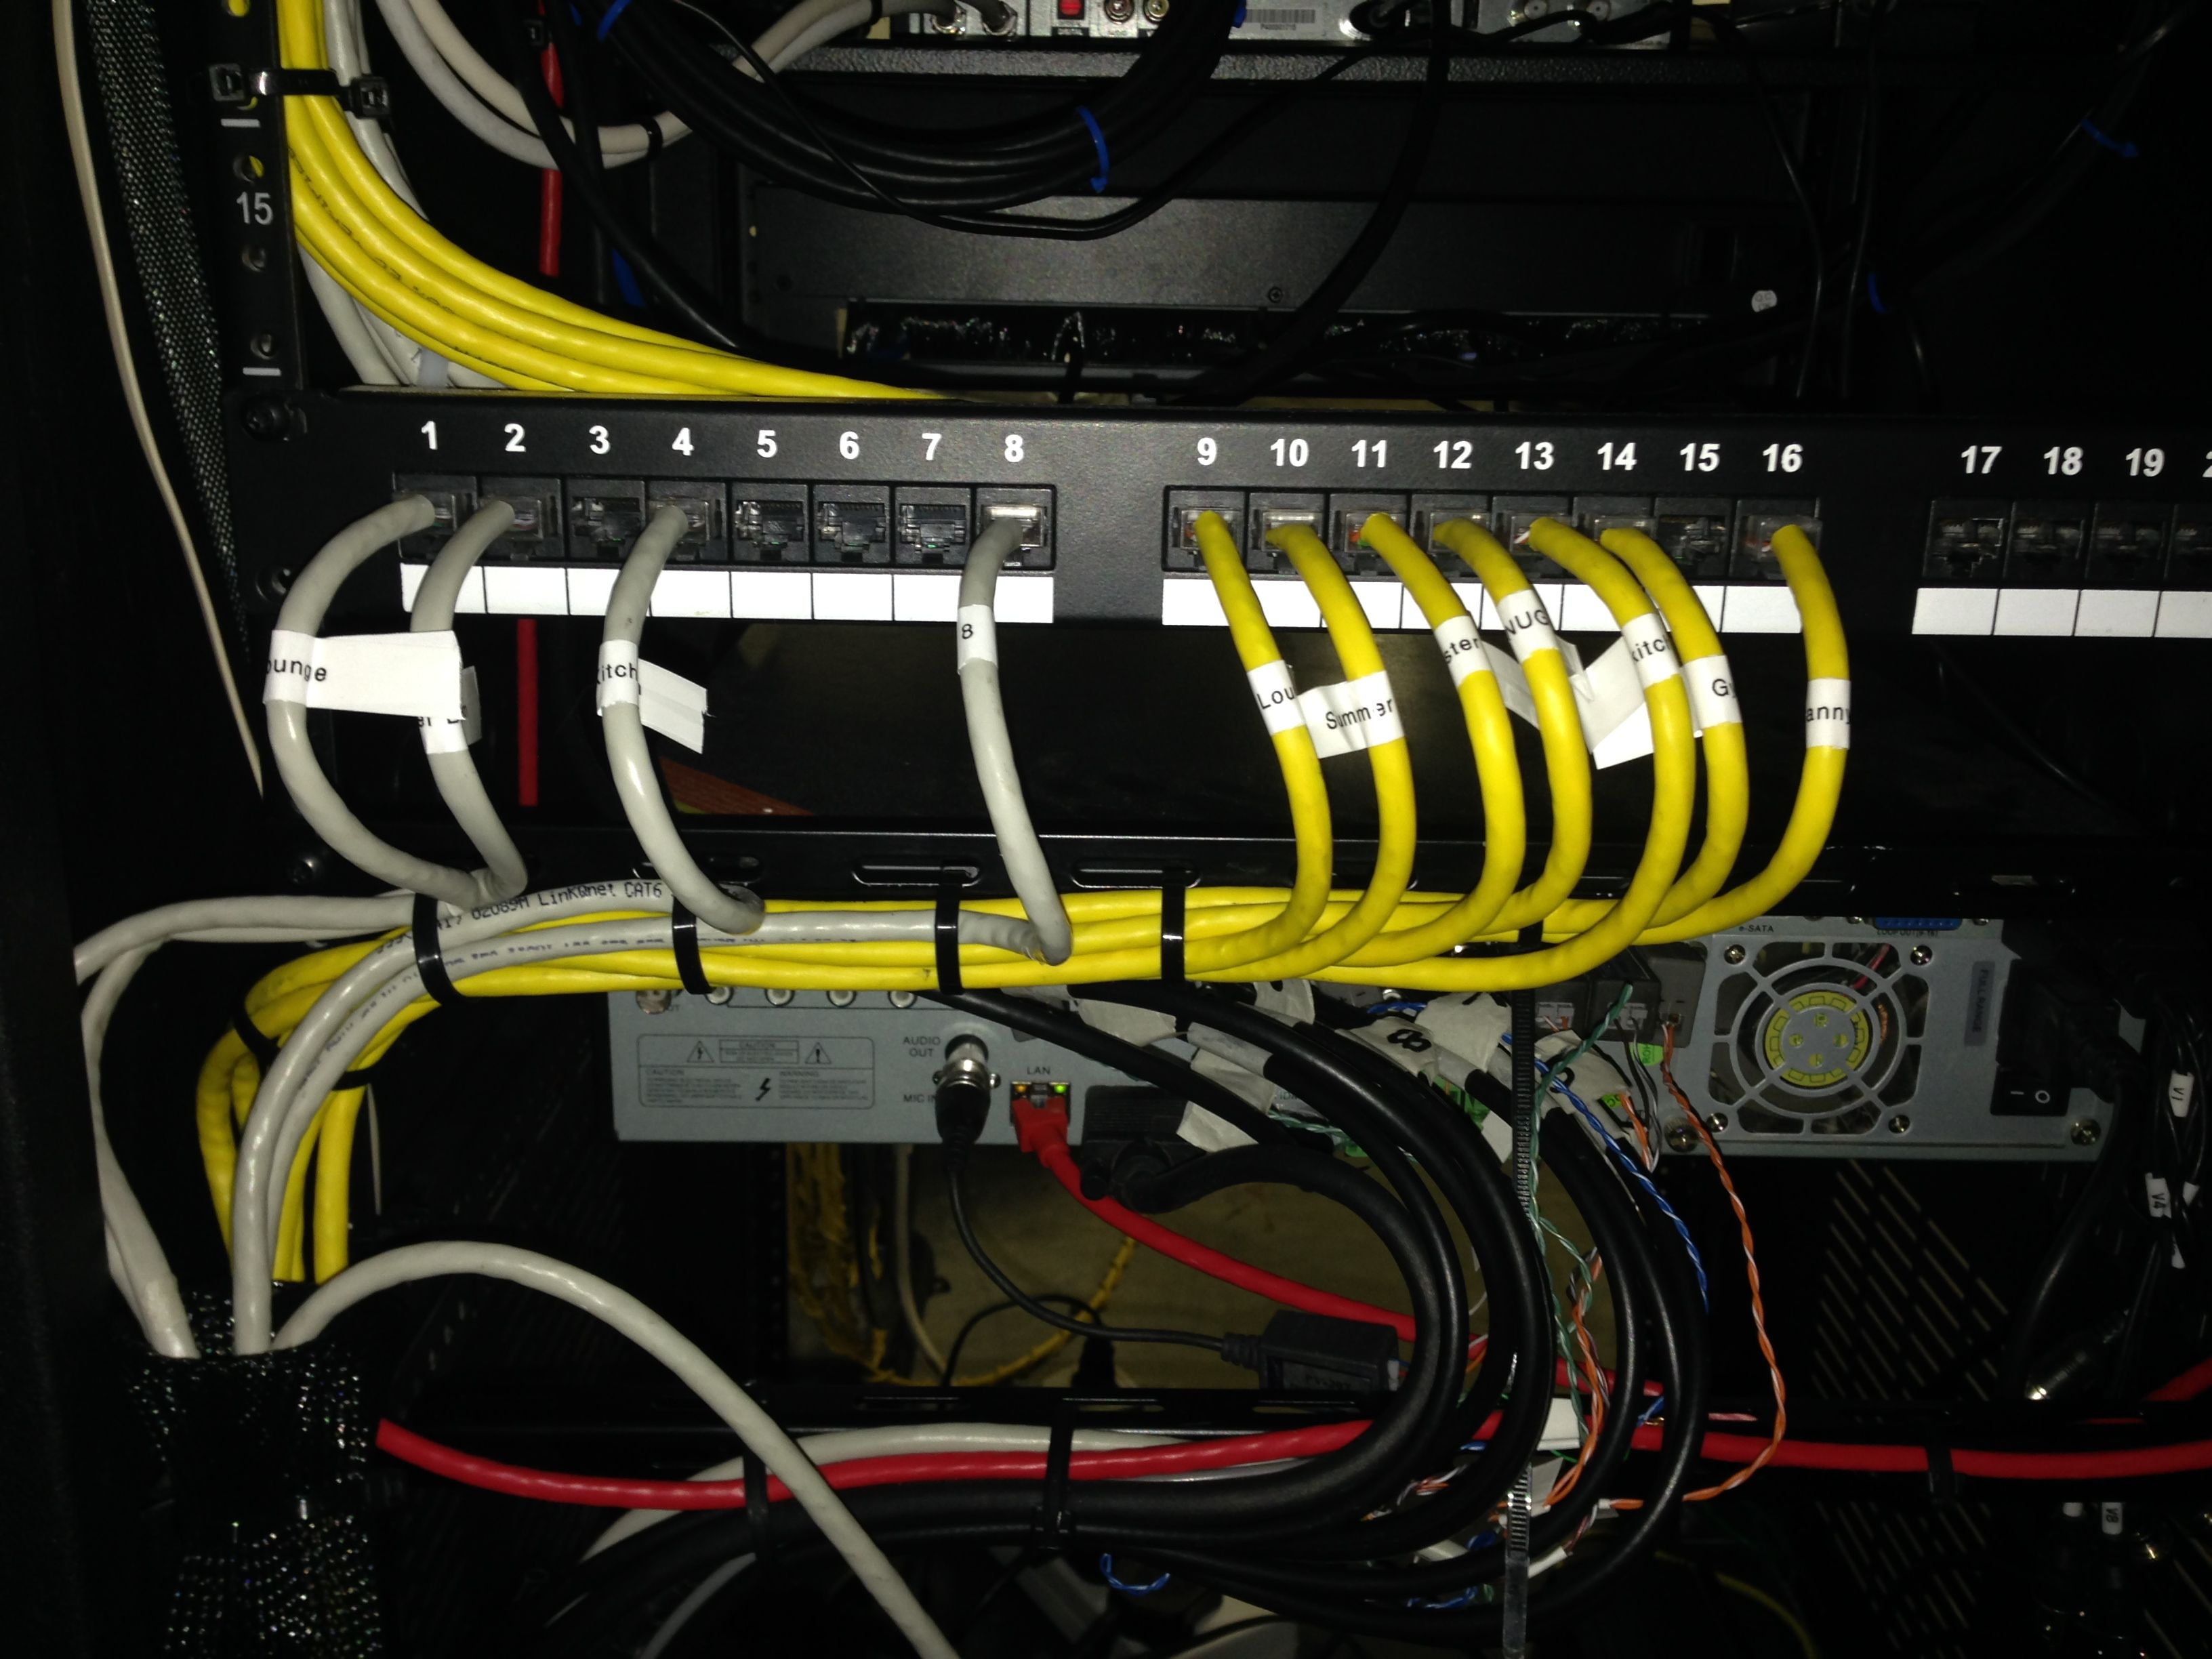 Cabling Secured To Lacing Bar So That No Movement Can Be Made On Connections To The Rear Patch Bay On This Systems Computer Network Networking Cable Management